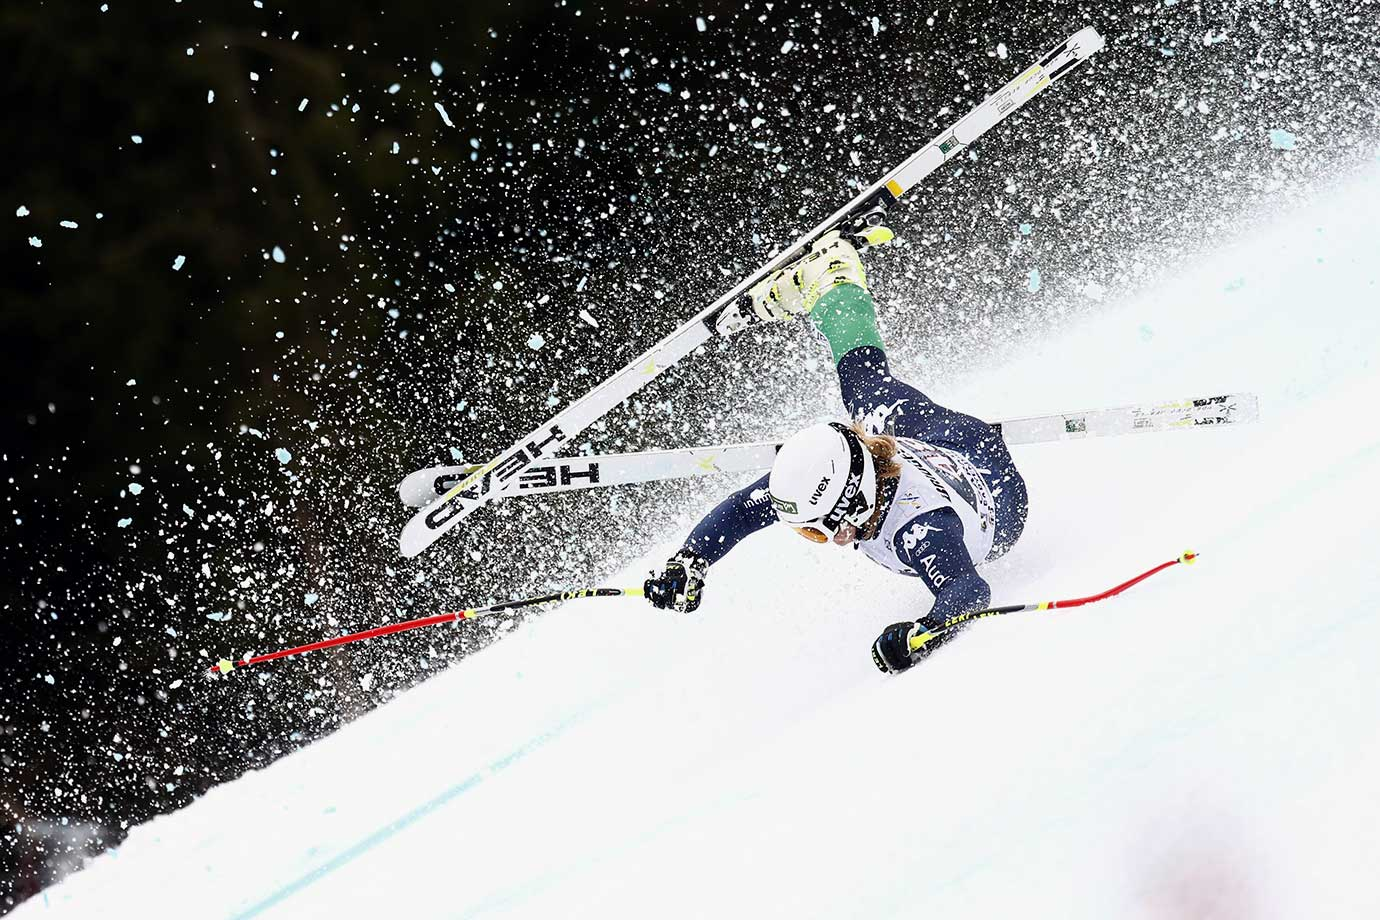 Verena Gasslitter of Italy crashes during the Audi FIS Alpine Ski World Cup Women's Super G in Garmisch-Partenkirchen, Germany.